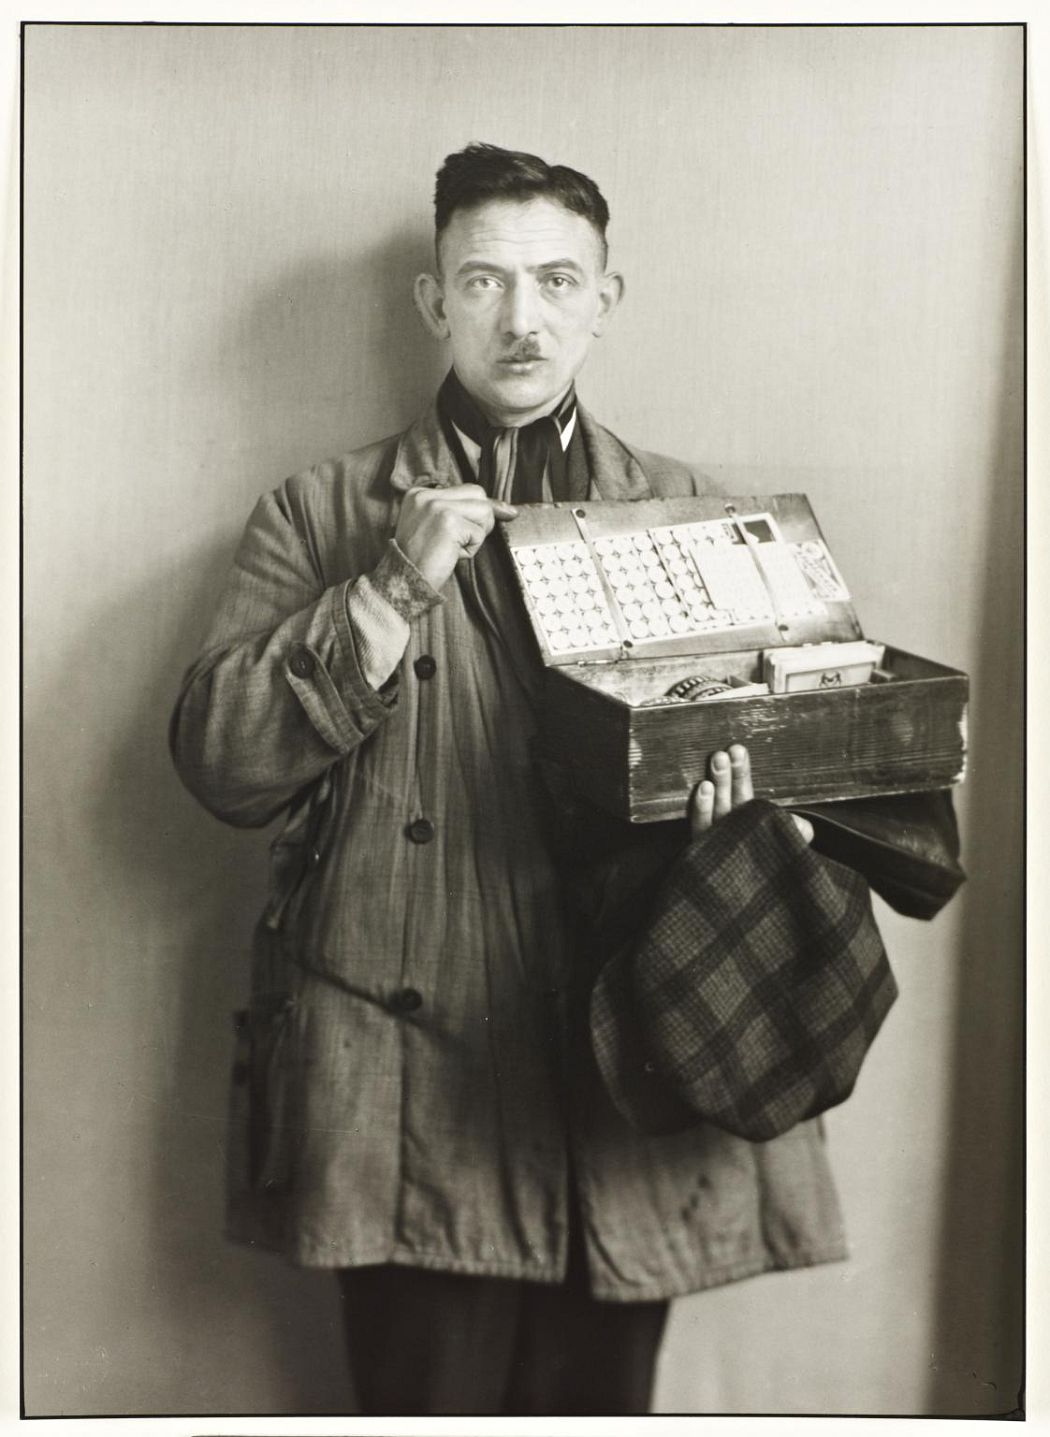 Peddler 1930, printed 1990 August Sander 1876-1964 ARTIST ROOMS Tate and National Galleries of Scotland. Lent by Anthony d'Offay 2010